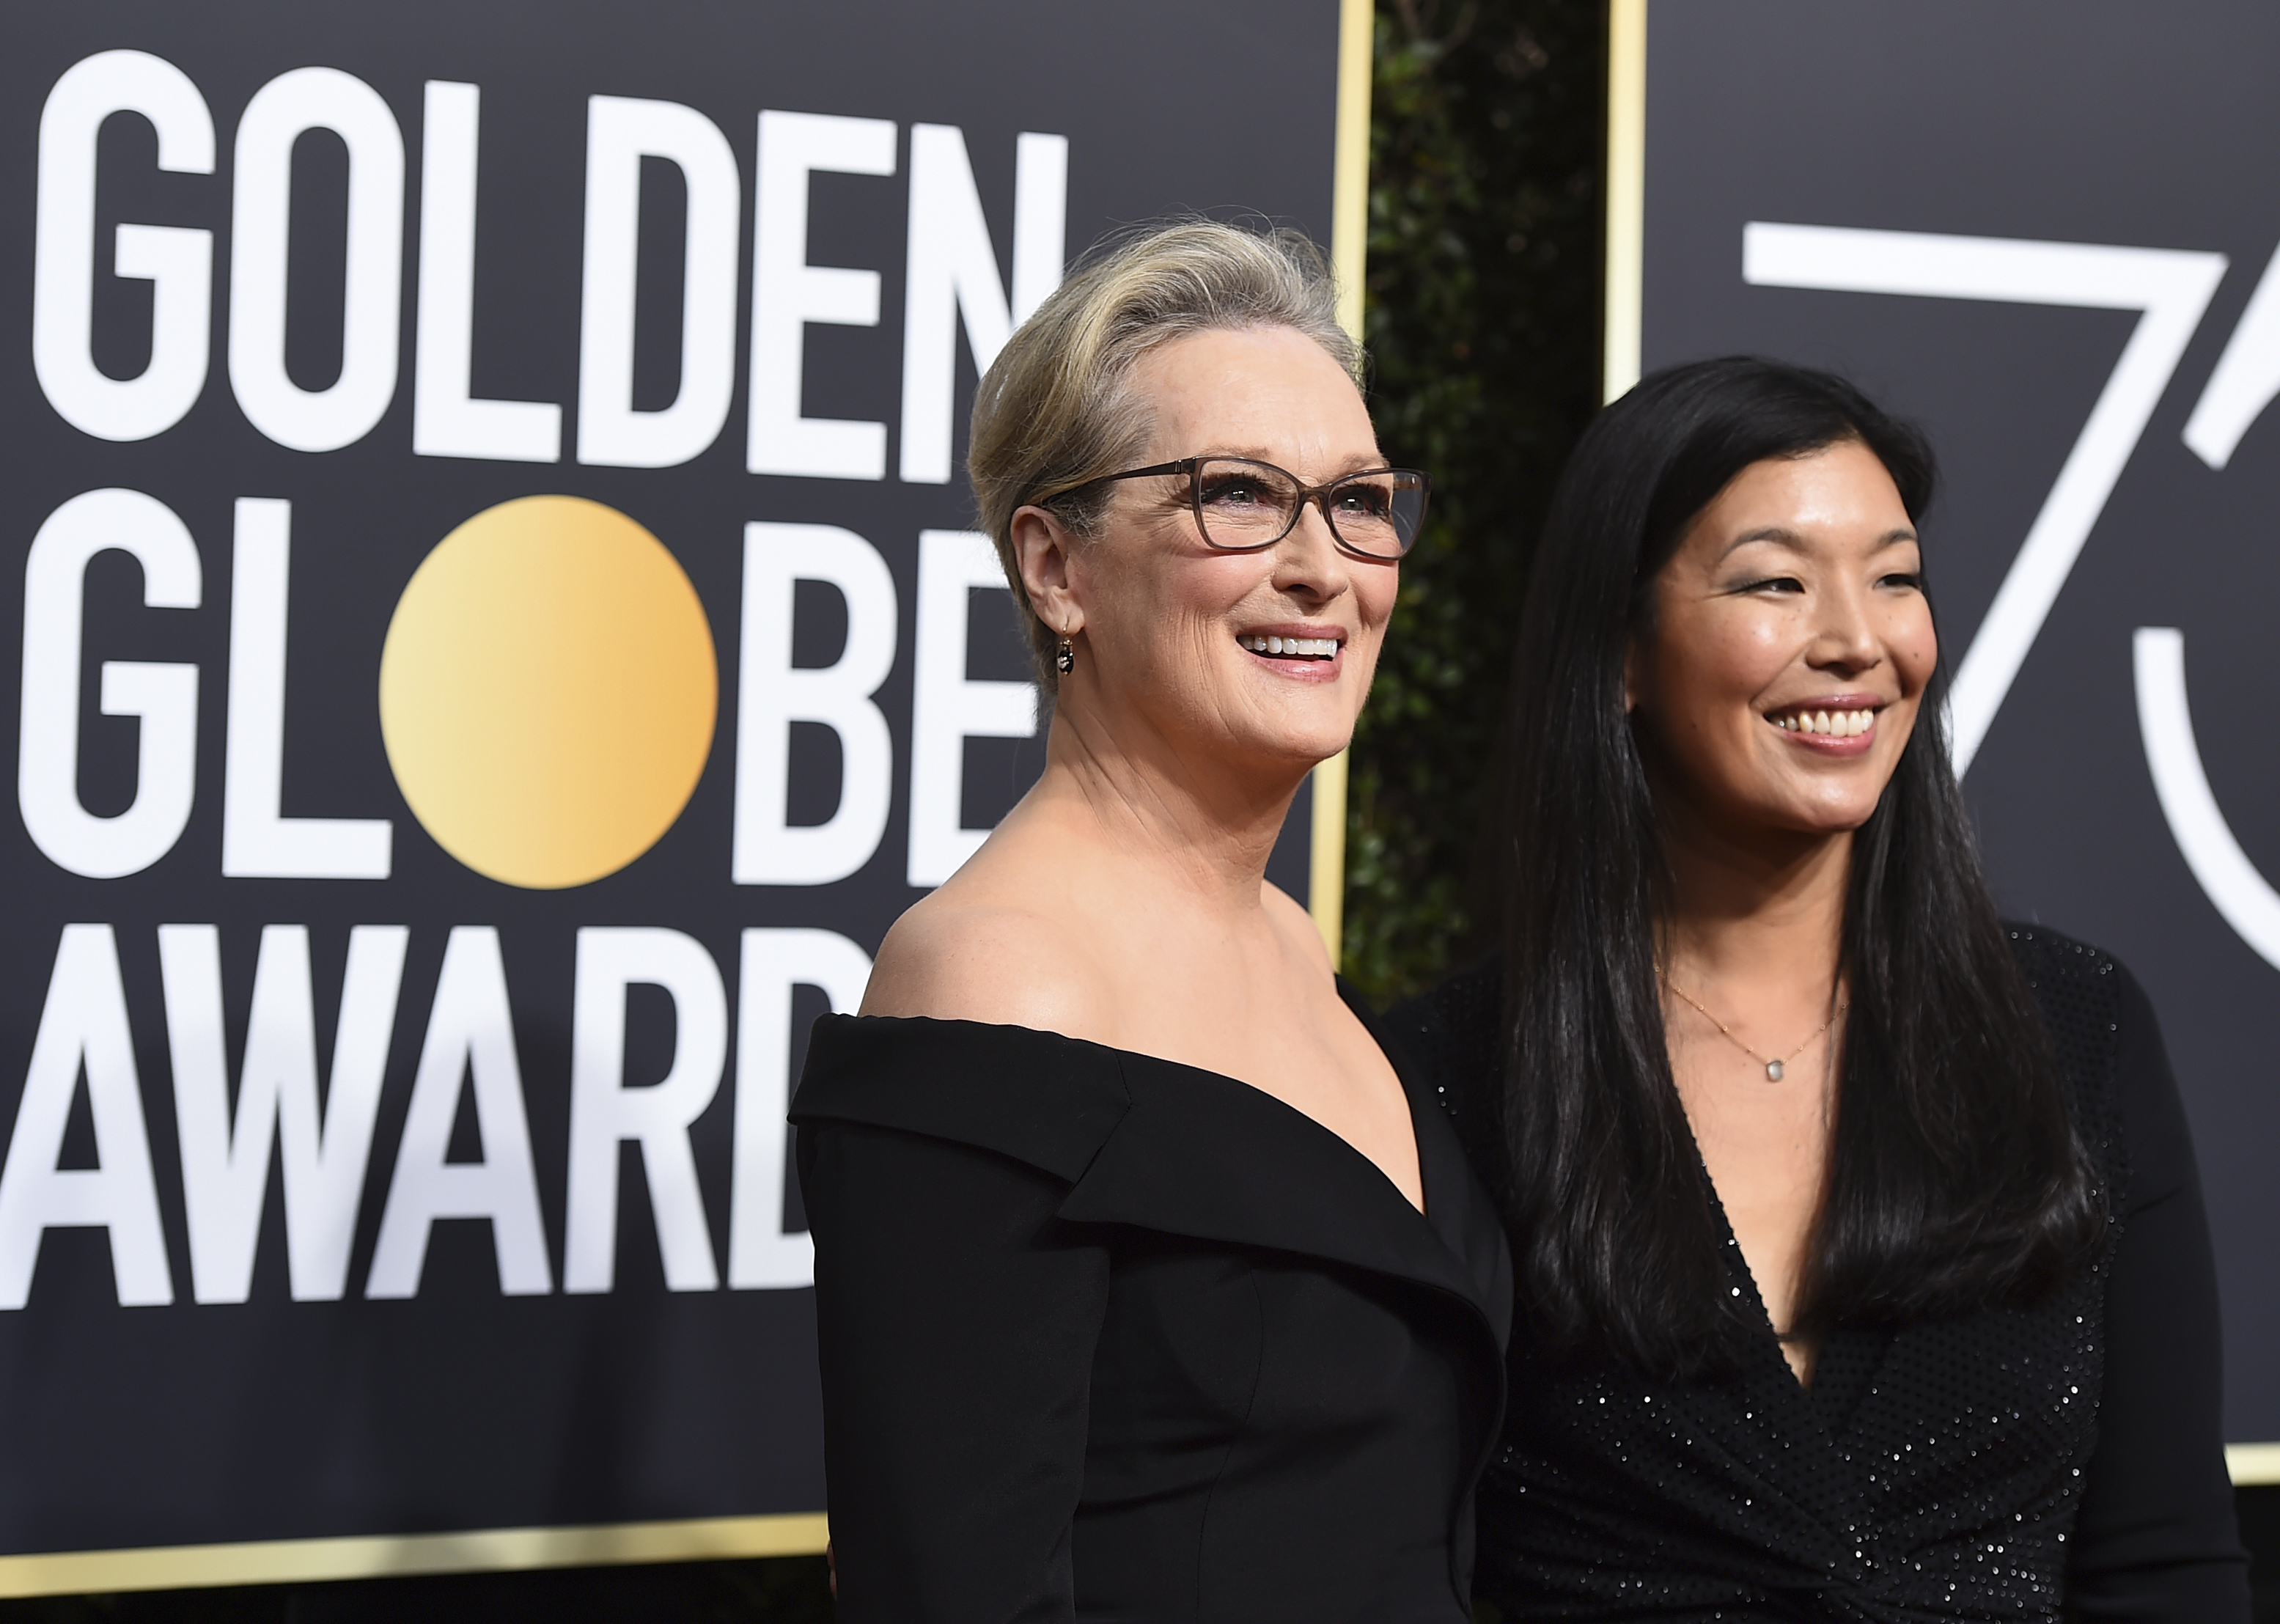 <div class='meta'><div class='origin-logo' data-origin='AP'></div><span class='caption-text' data-credit='Jordan Strauss/Invision/AP'>Meryl Streep, left, and Ai-jen Poo arrive at the 75th annual Golden Globe Awards at the Beverly Hilton Hotel on Sunday, Jan. 7, 2018, in Beverly Hills, Calif.</span></div>